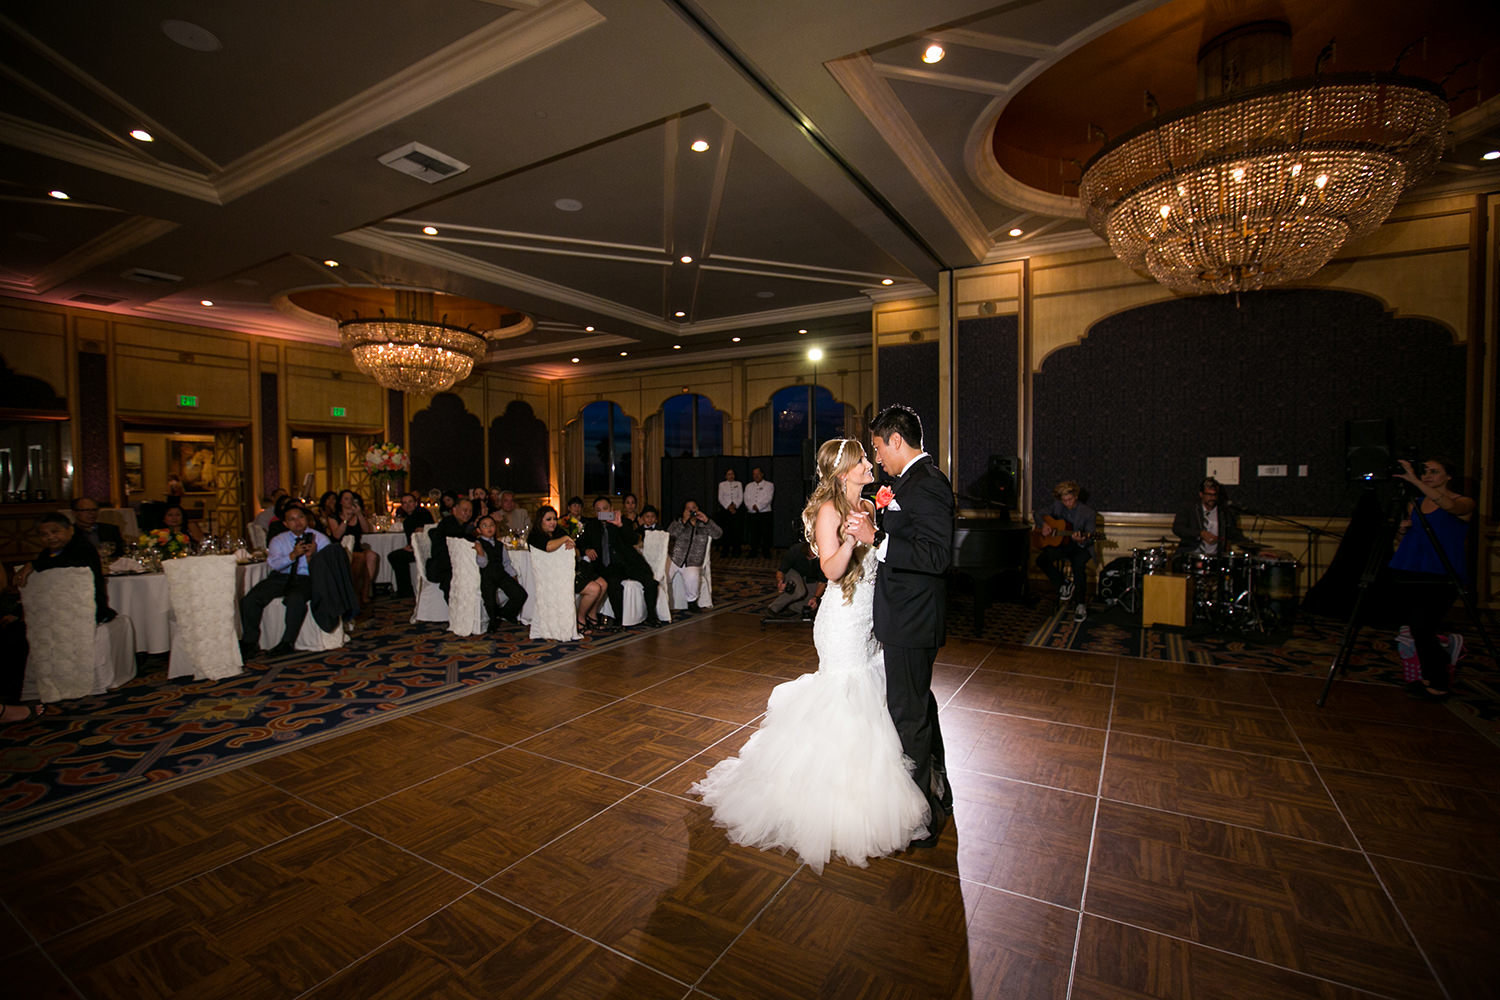 first dance with beautiful ulighting